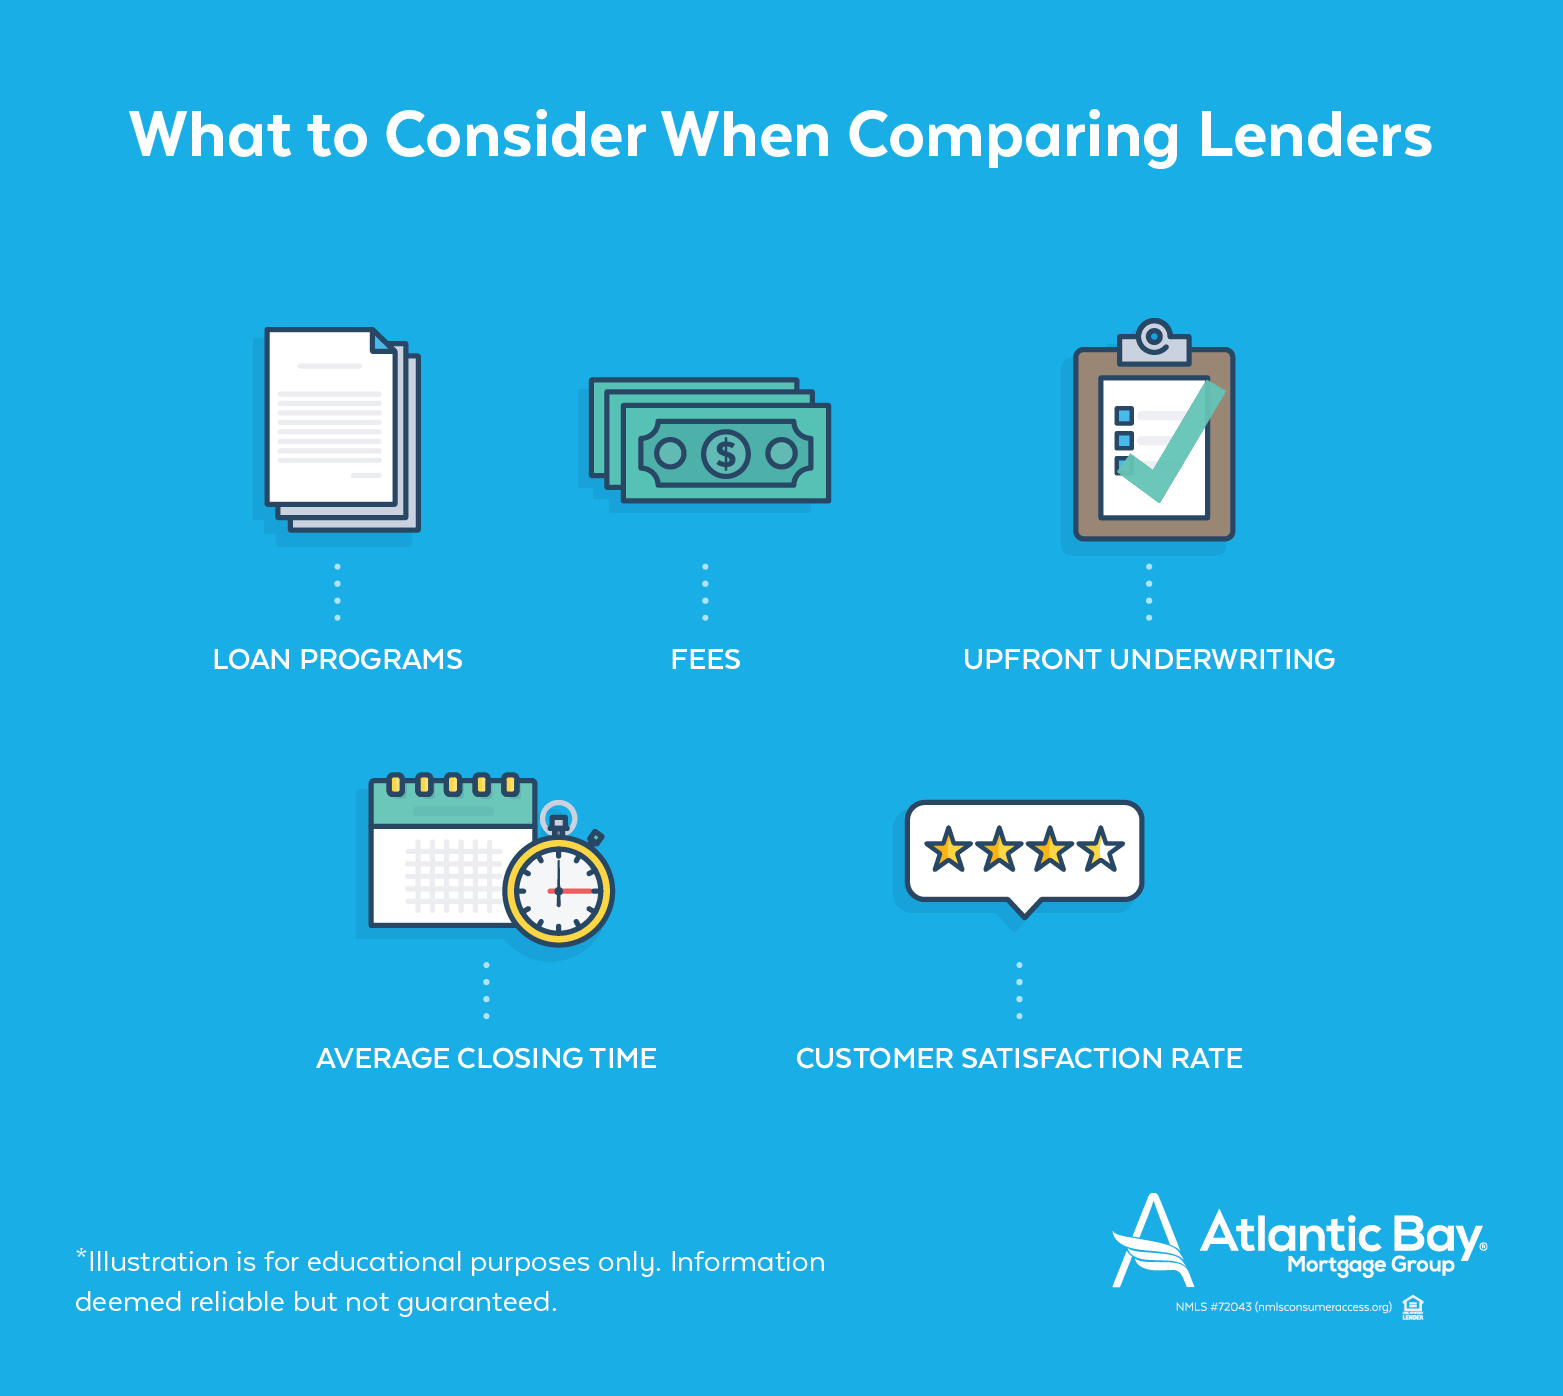 What to consider when comparing mortgage lenders